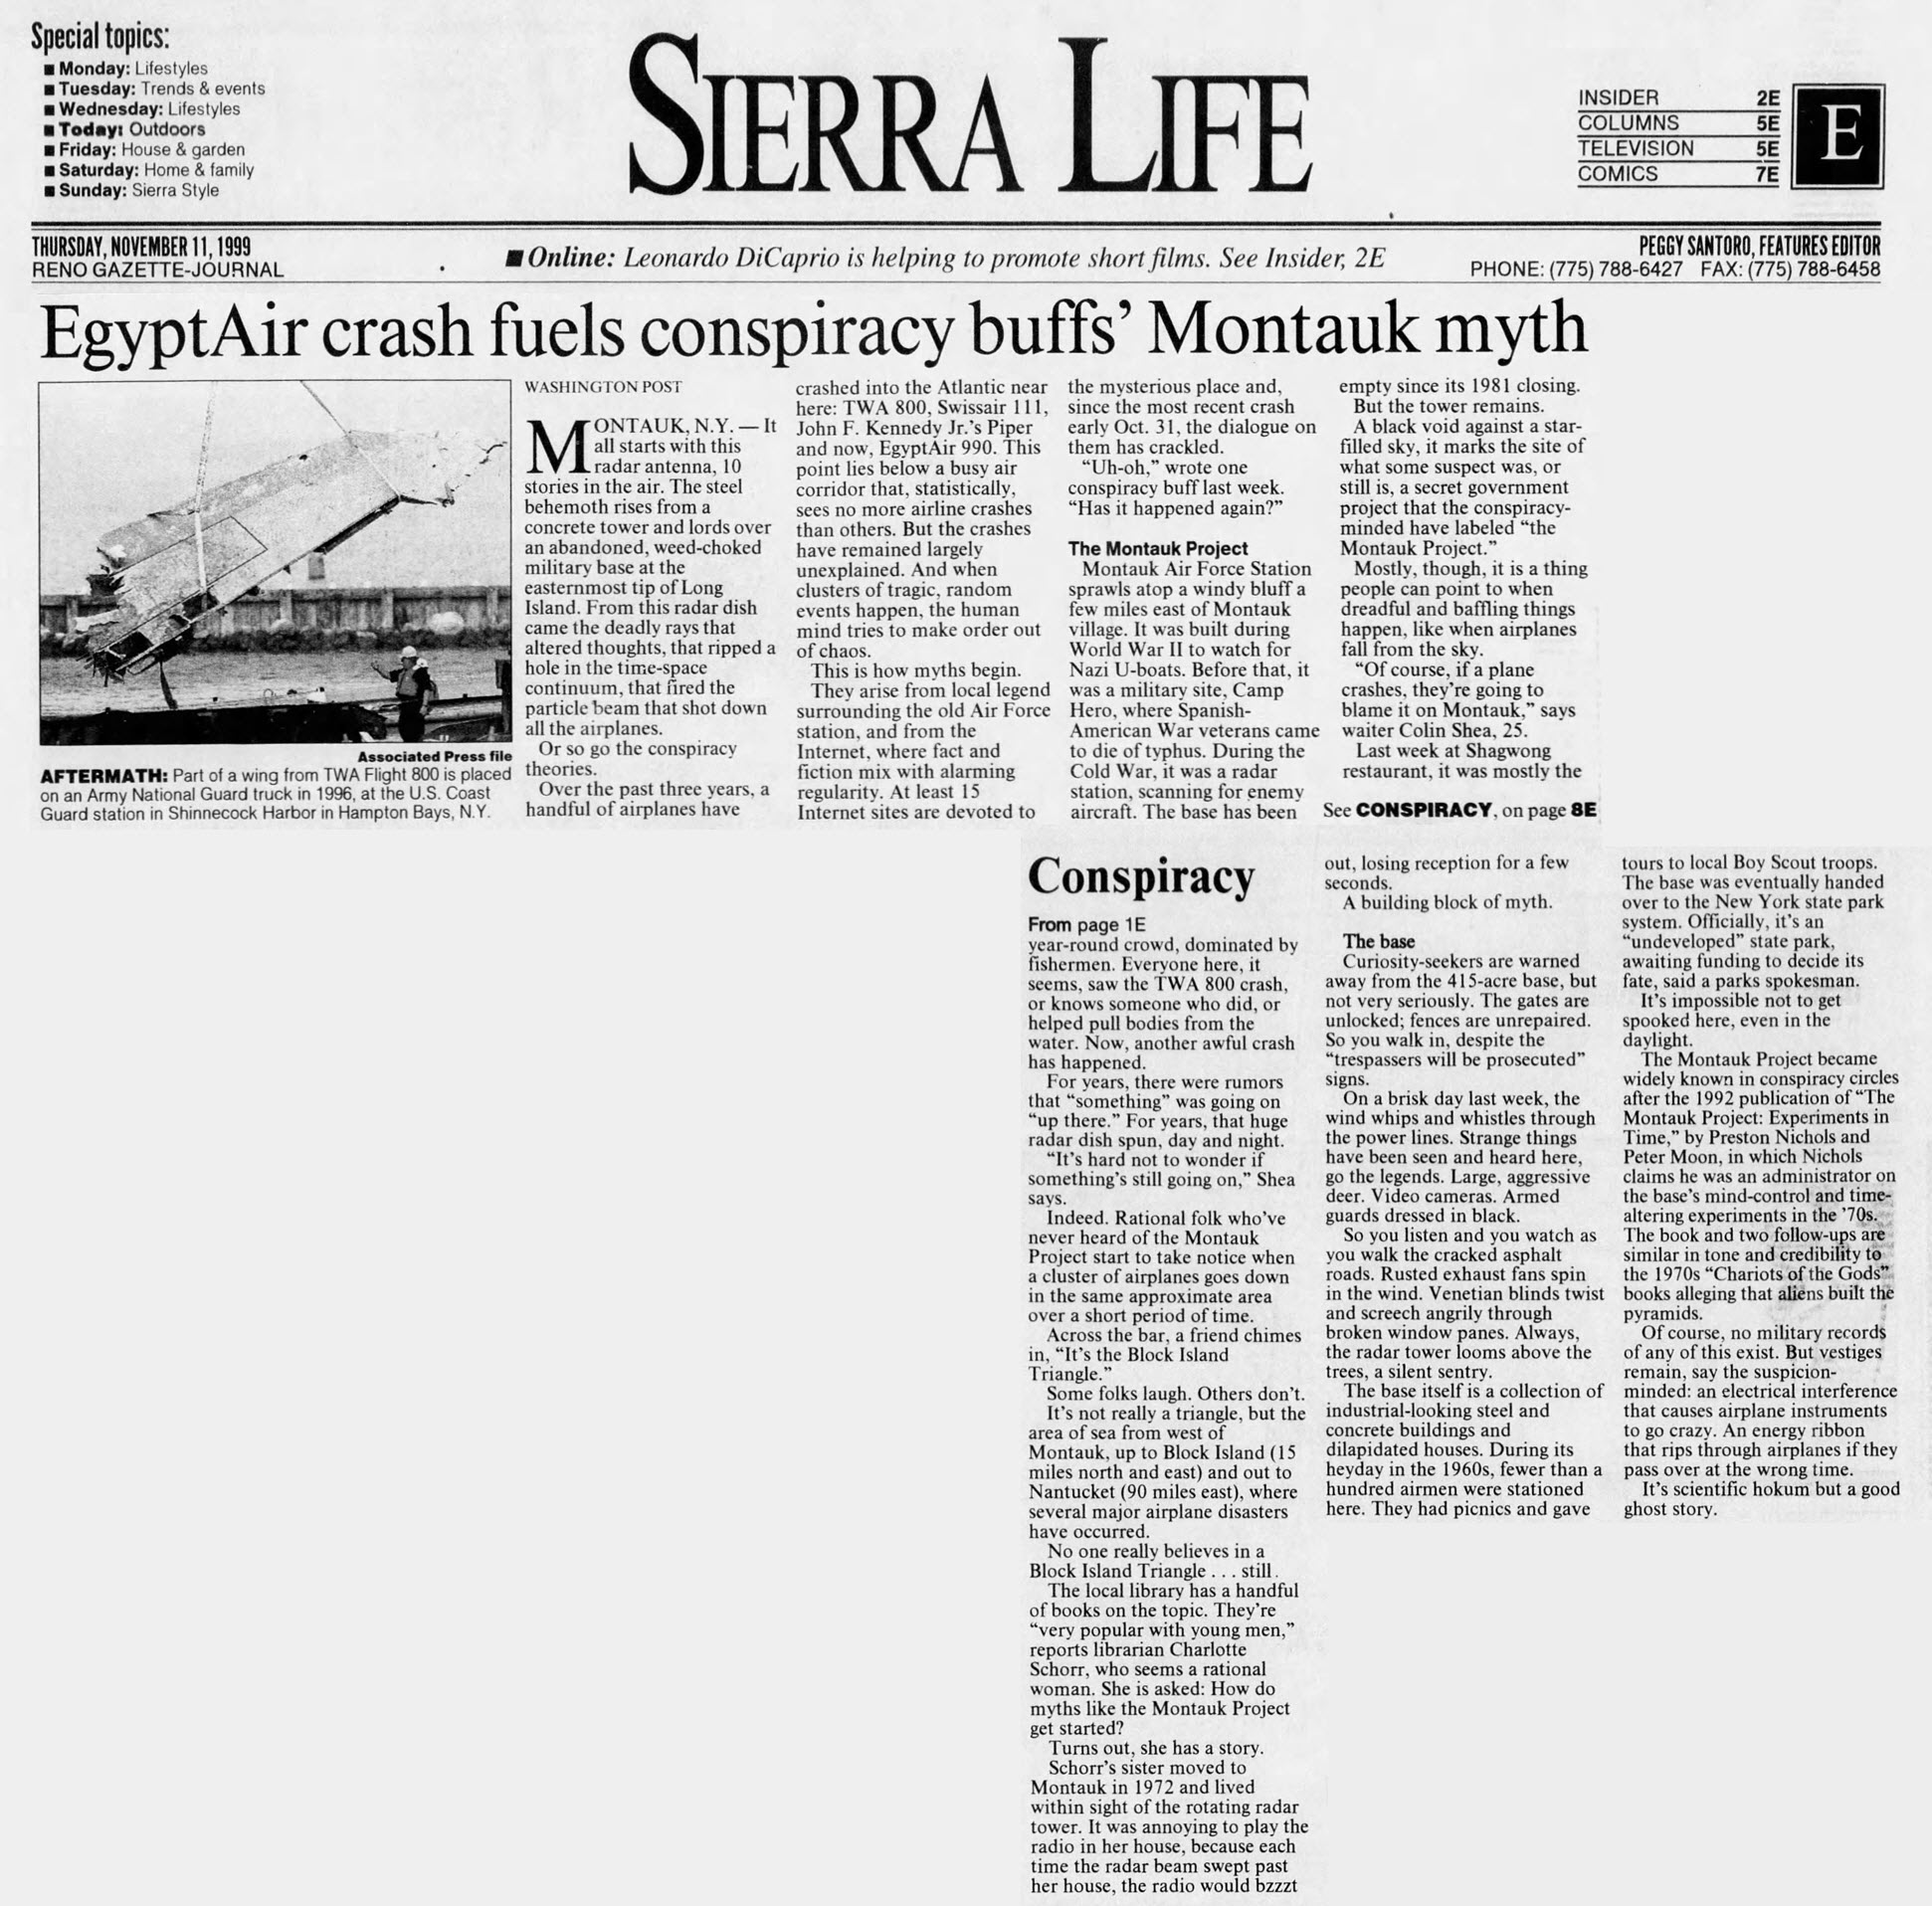 Reno Gazette Journal (Nov,11,1999)